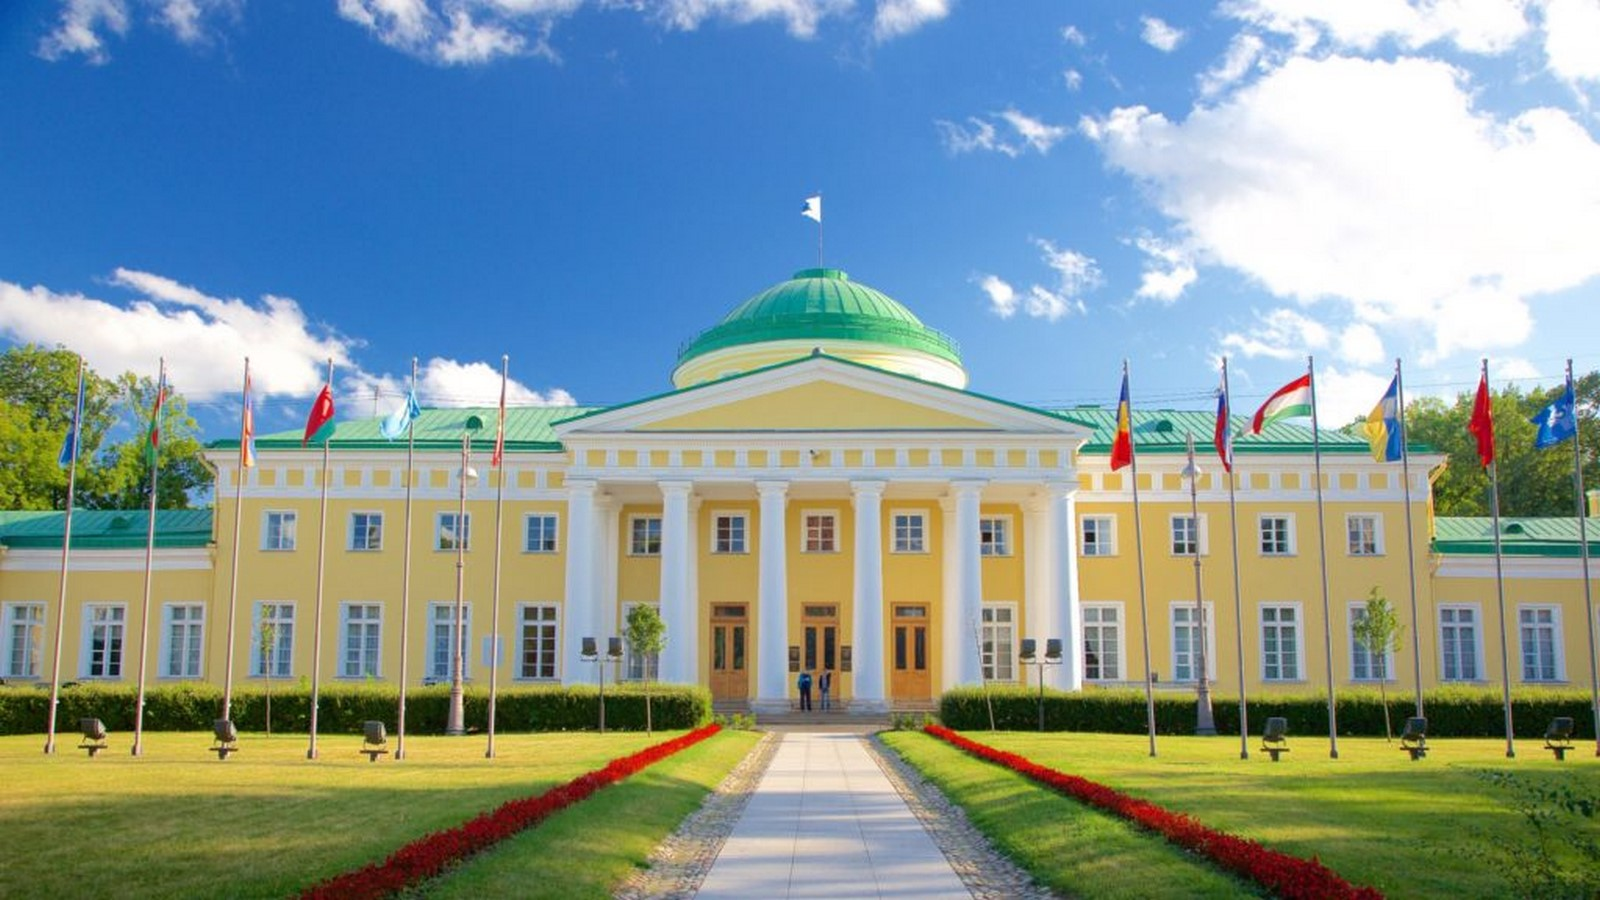 10 Structures that represent the Historical architecture of Russia - Sheet5